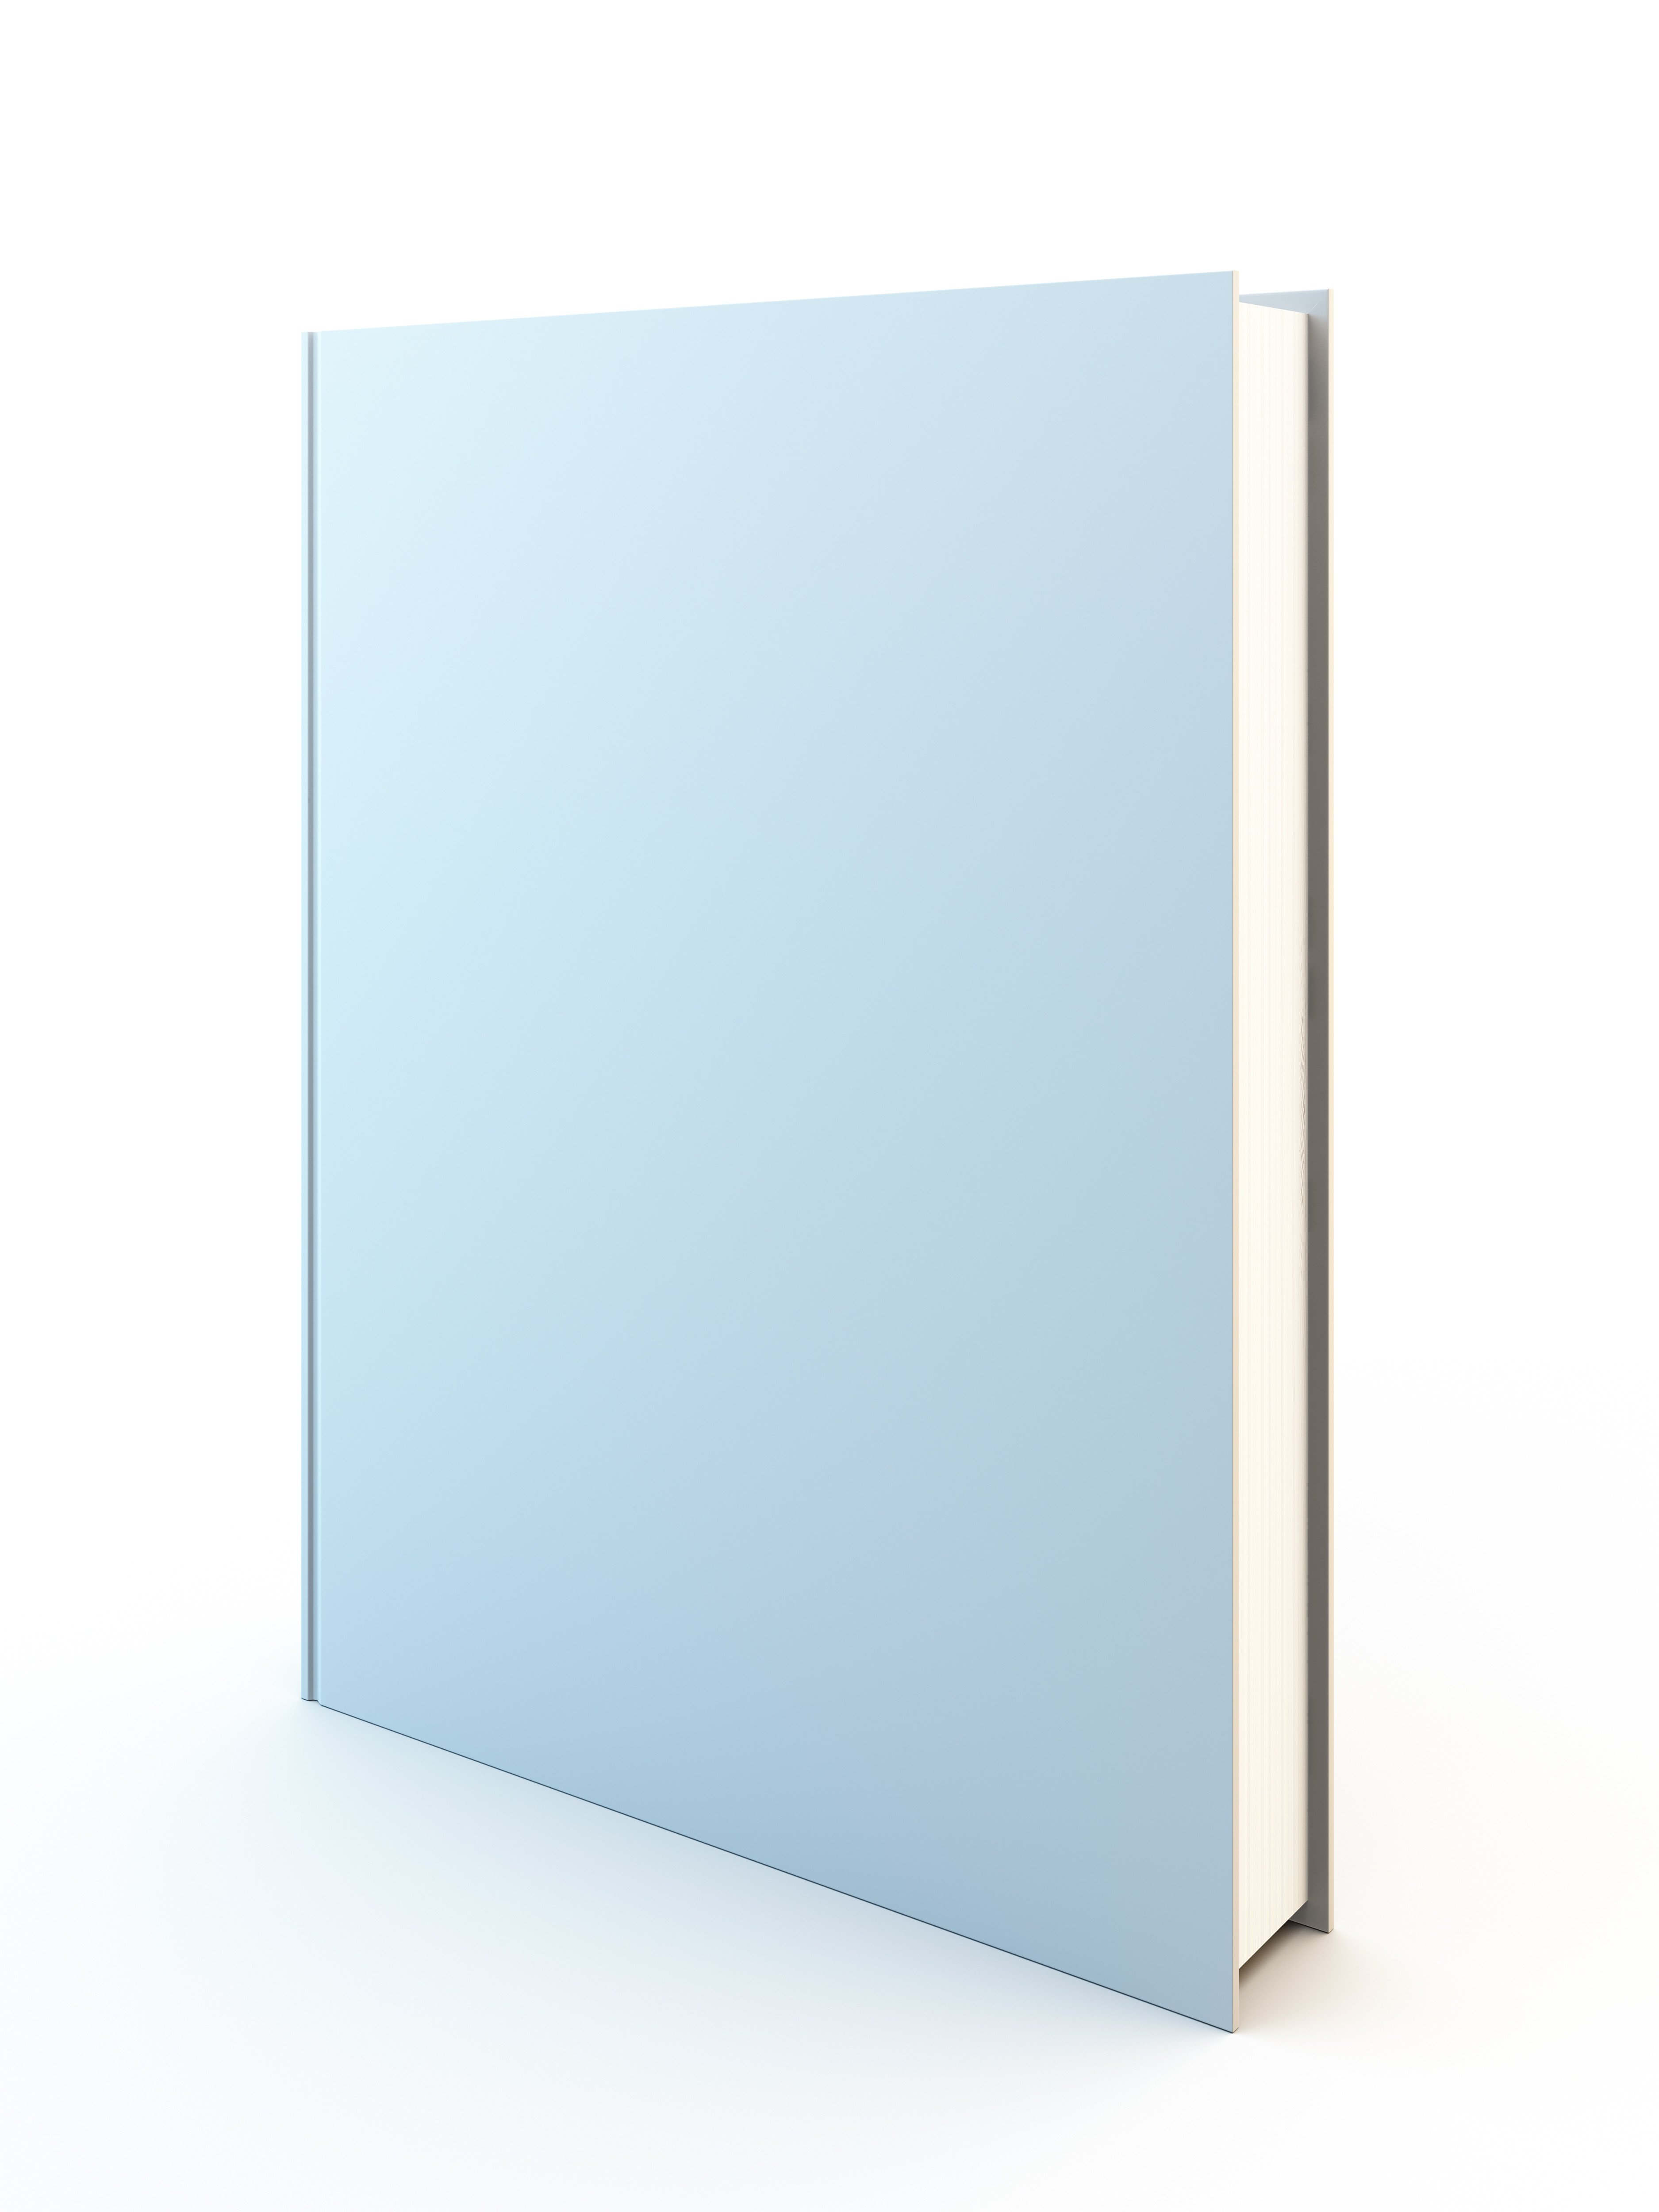 3d Book Cover Template the Book Cover – Book Design Blog